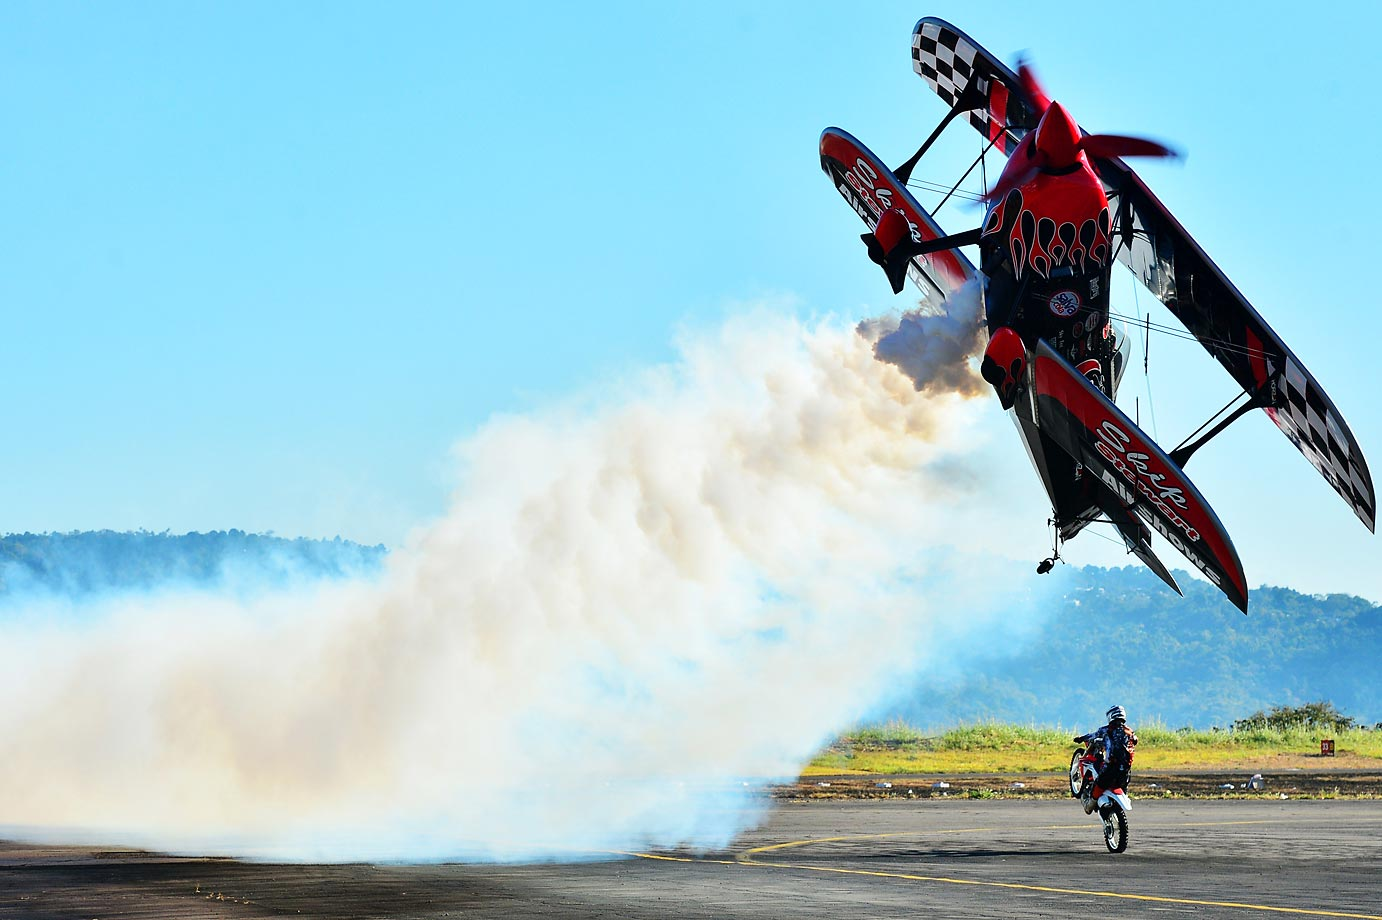 Skip Stewart of the U.S. performs a stunt during the Ilopango Air Show in San Salvador.